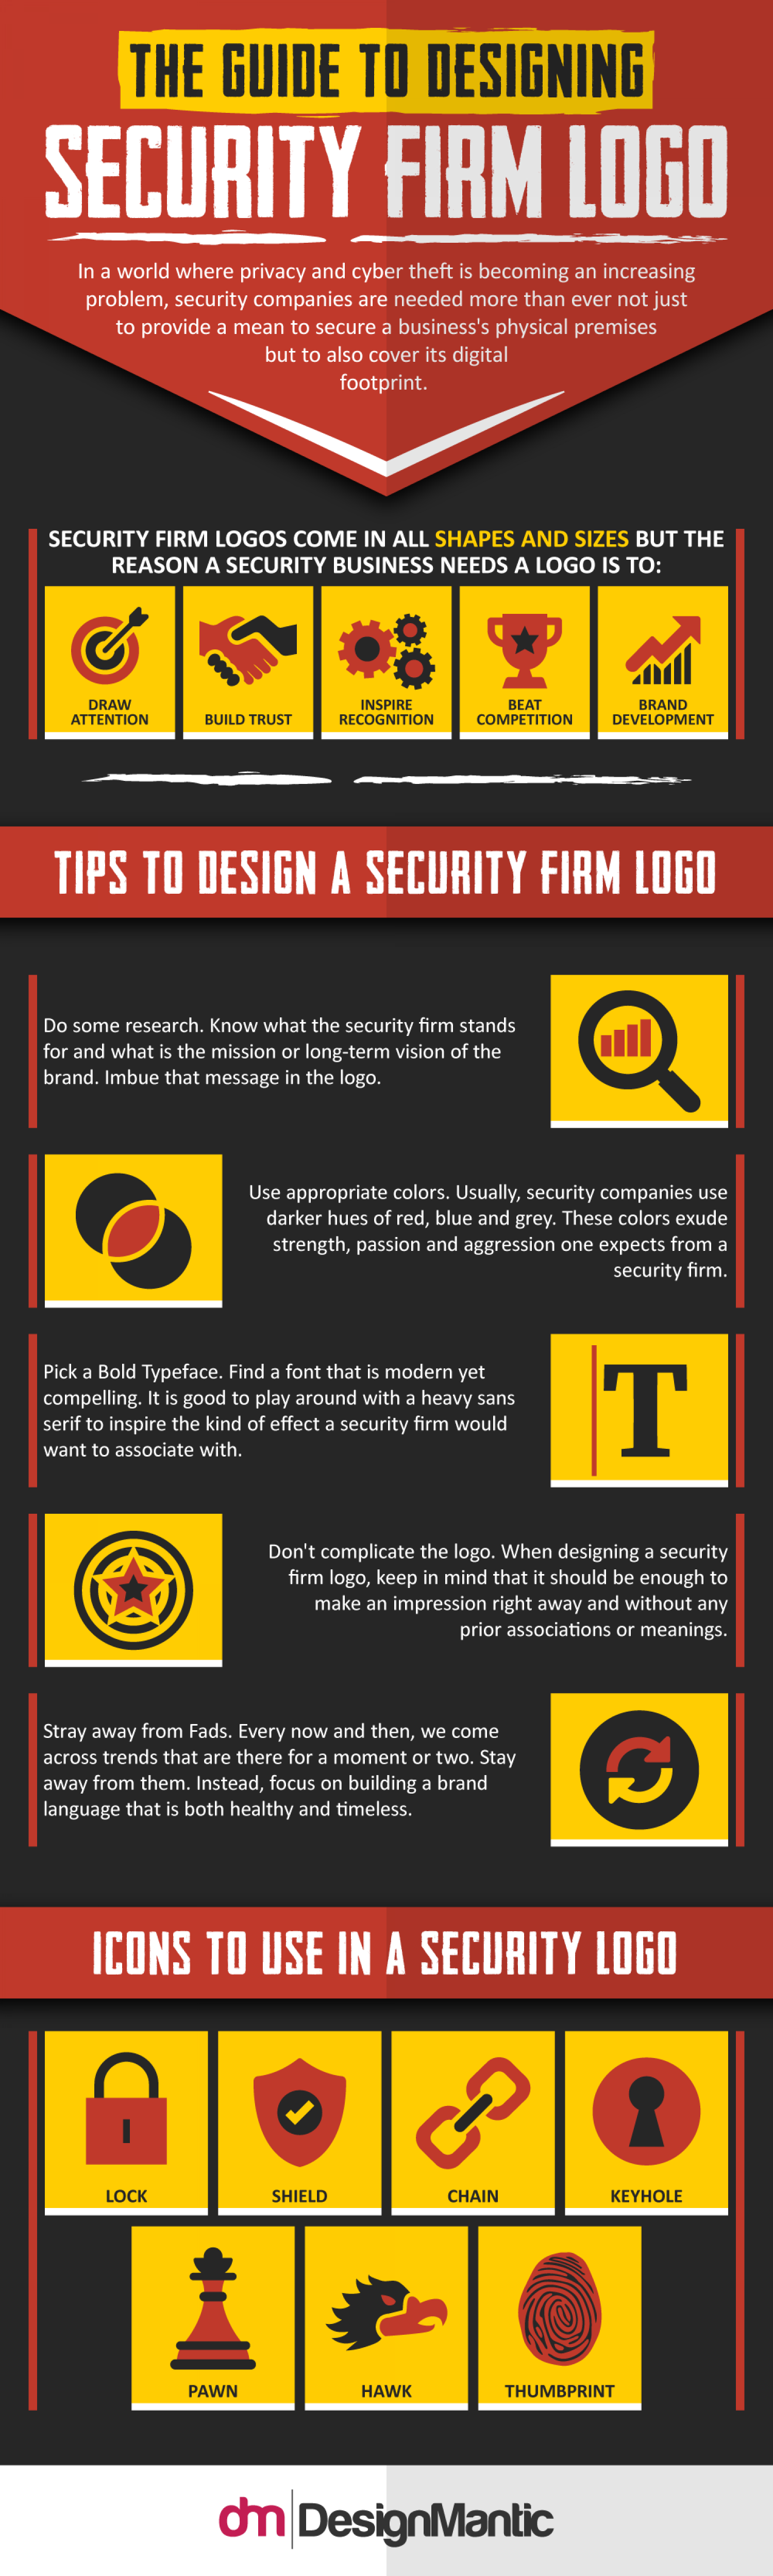 The Guide To Designing A Security Firm Logo Infographic